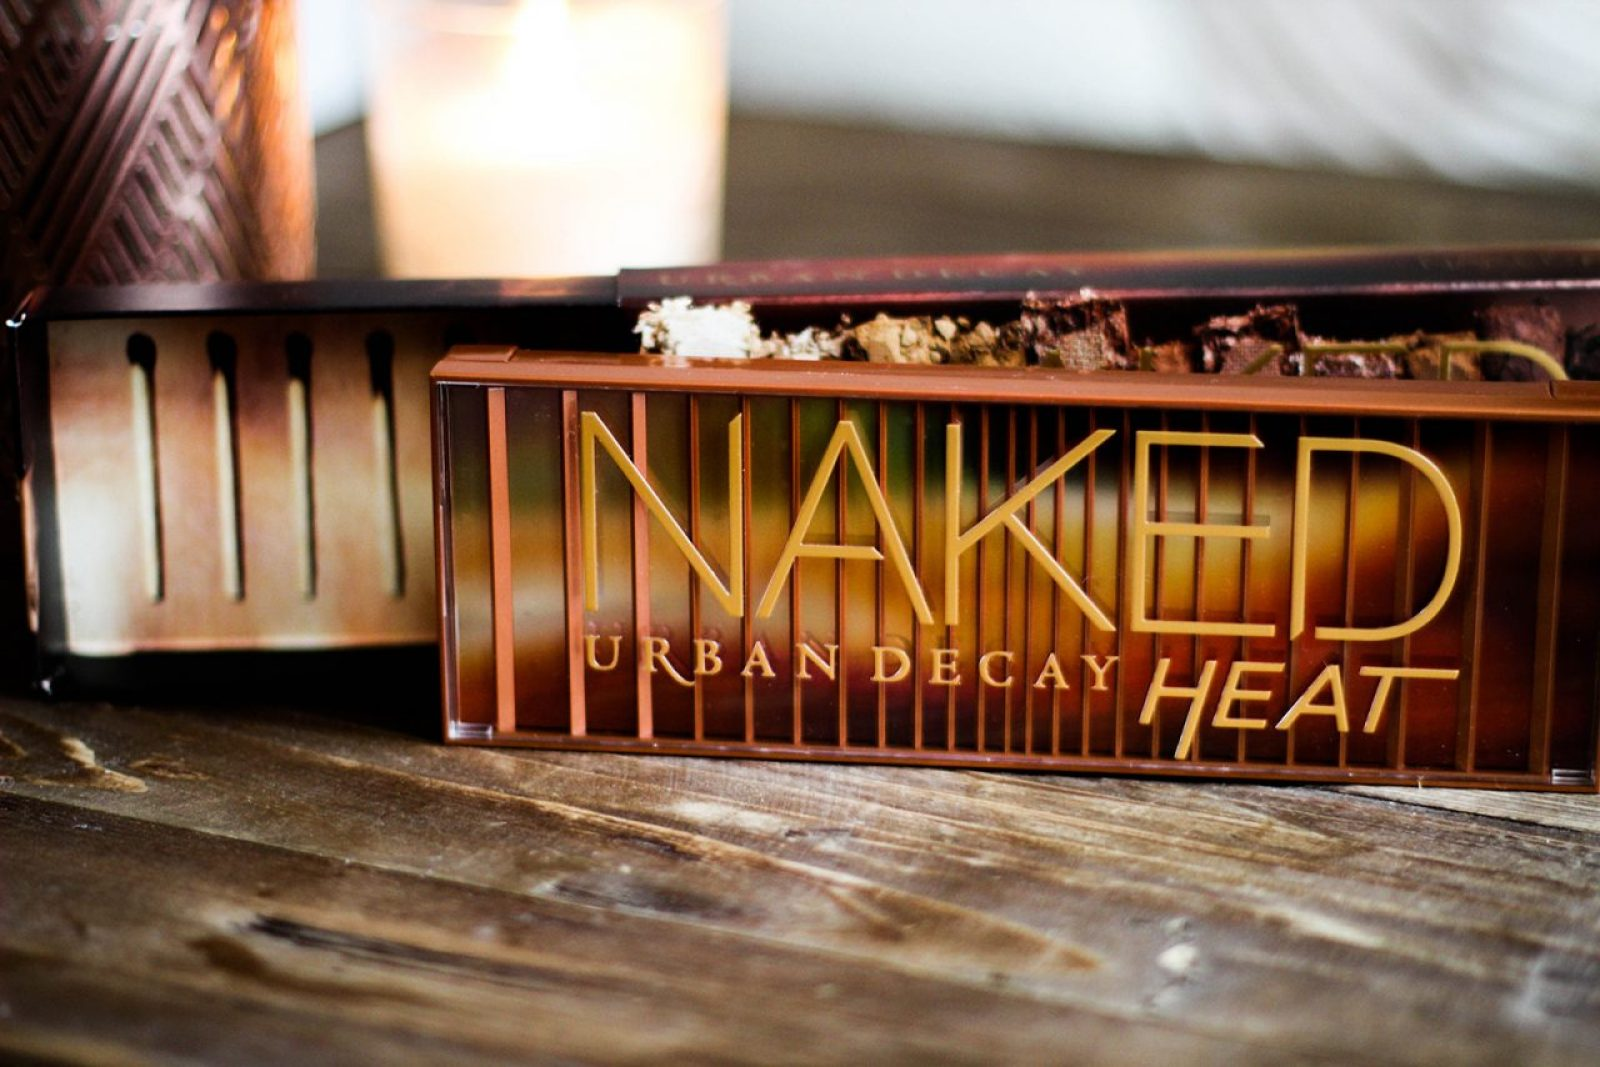 Palette Naked HeaUrban Decay_22